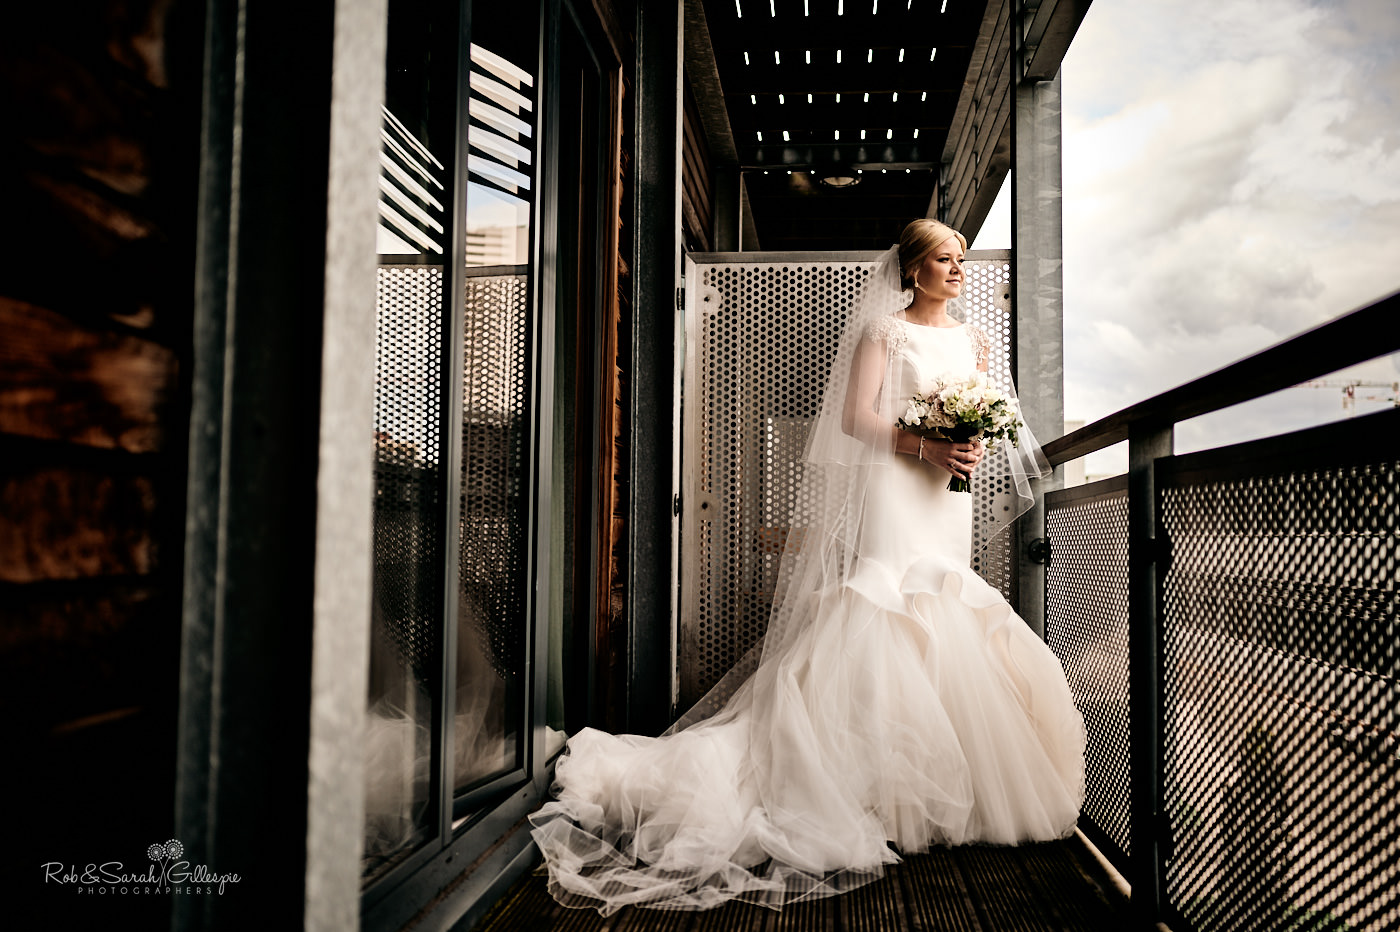 Bride portrait on balcony holding bouquet